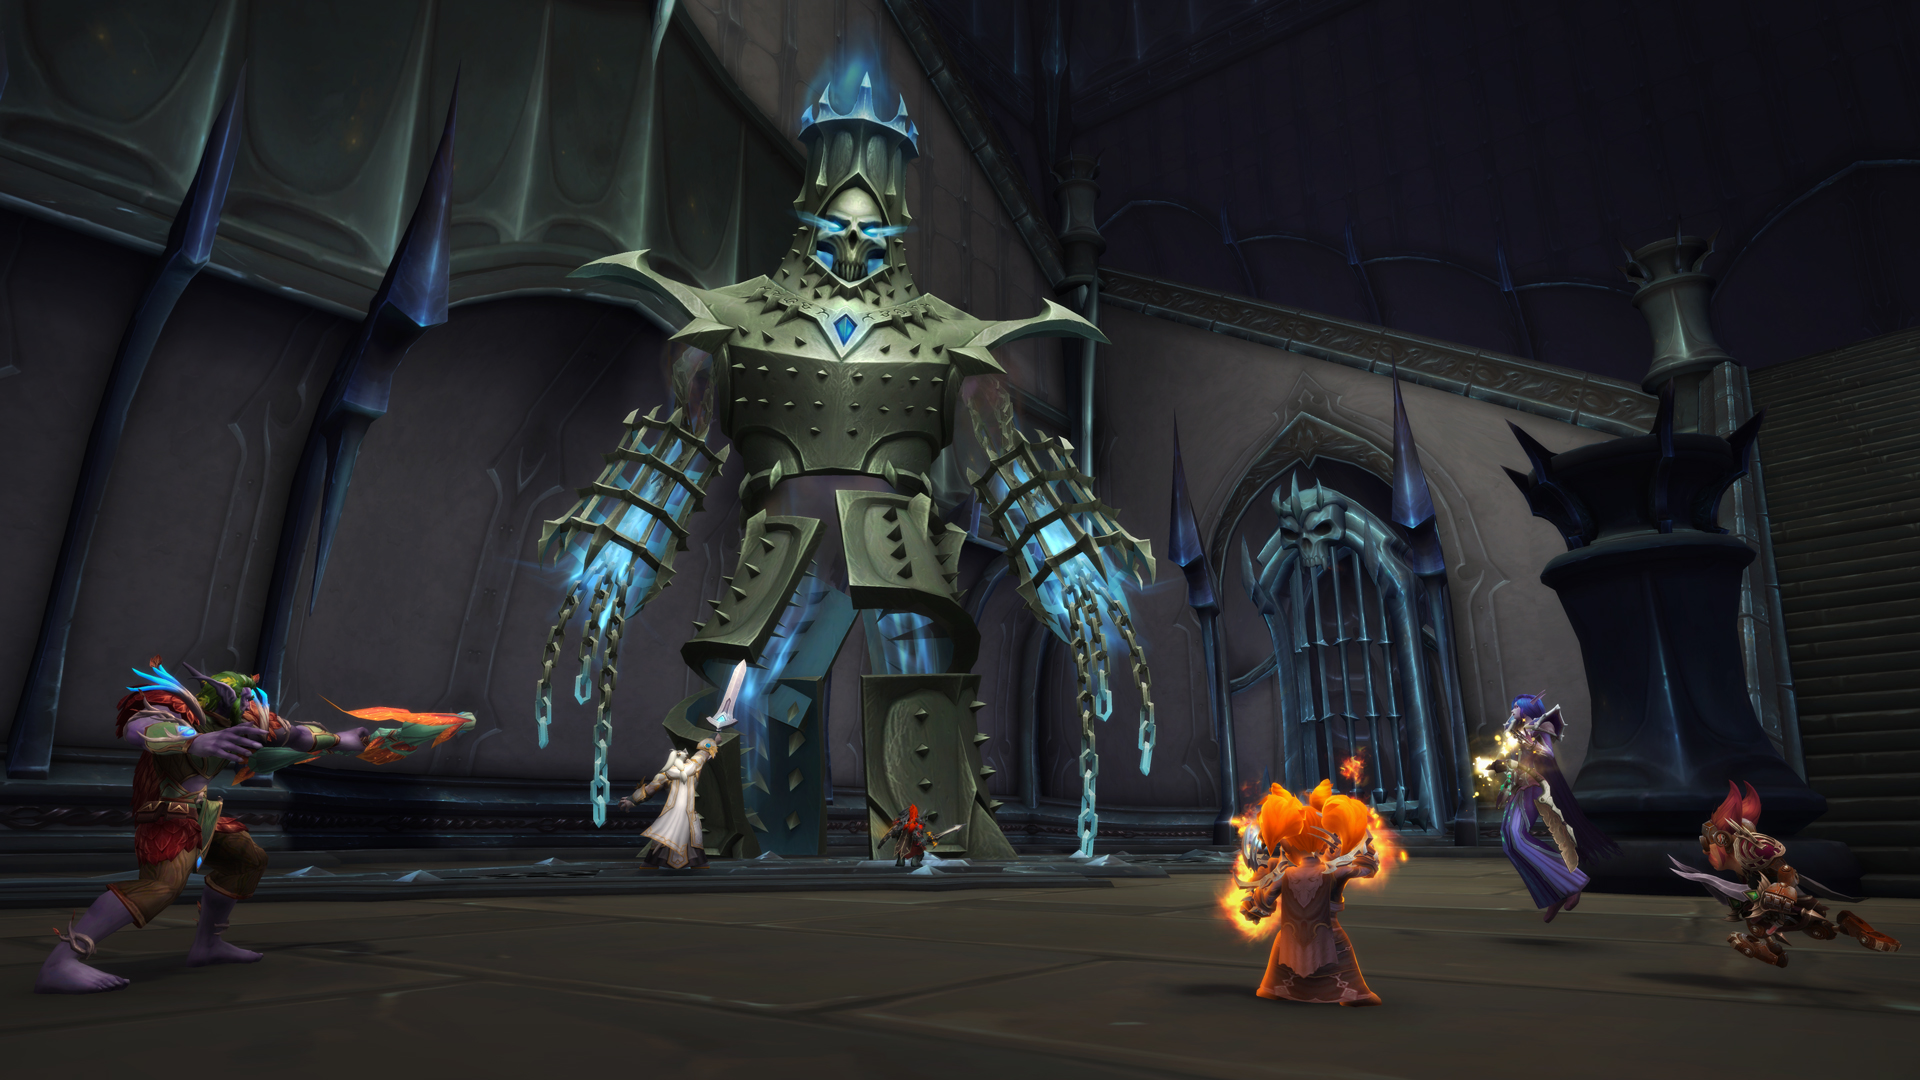 World of Warcraft - a group of heroes fight one of the raid bosses in the Maw-themed Sanctum of Domination